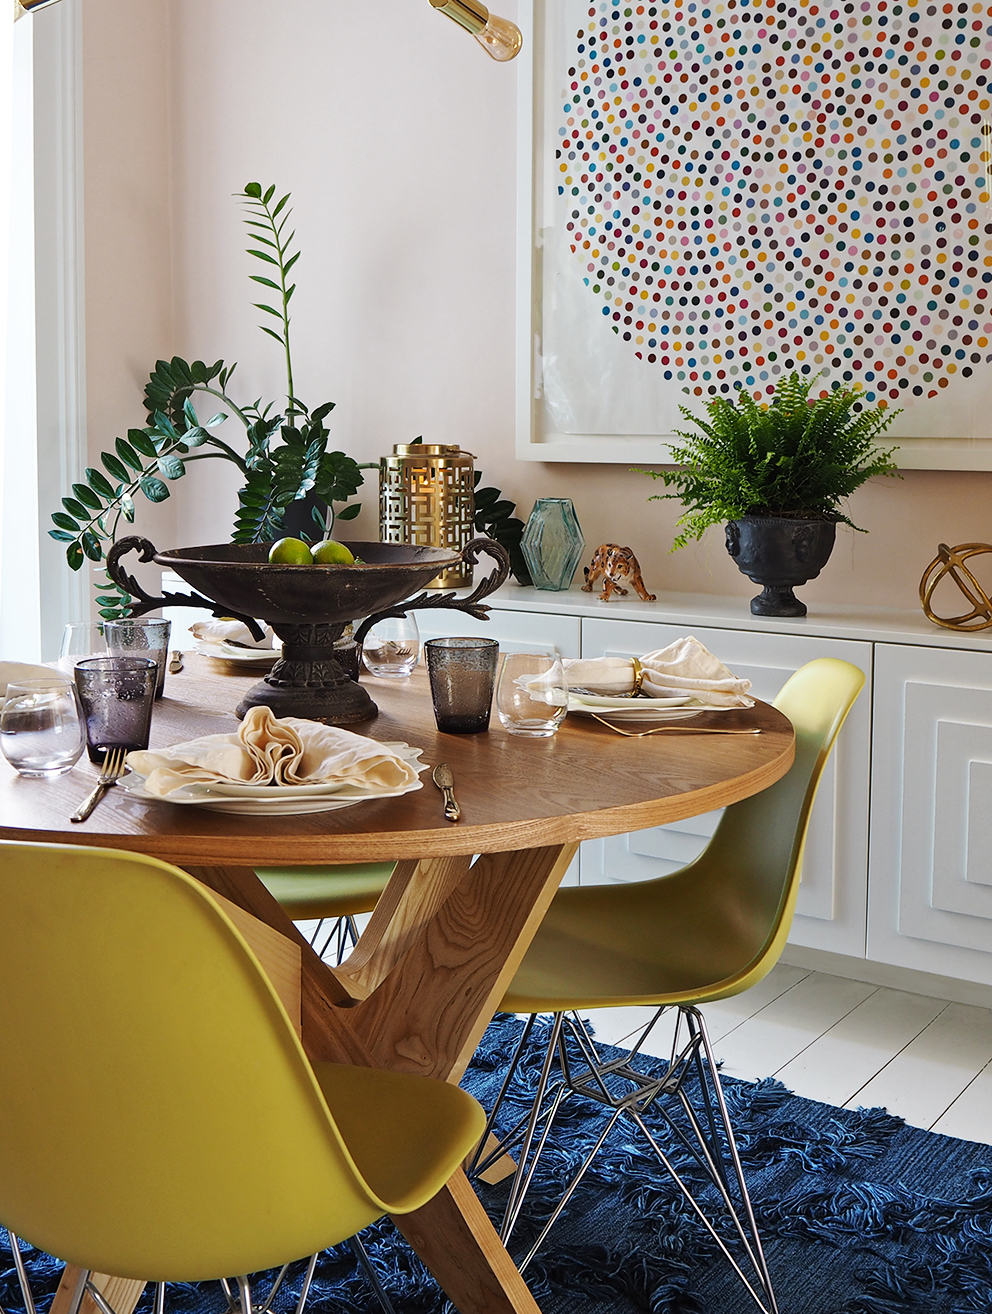 My Summer Dining Room - French For Pineapple Blog - Medium wide shot of dining room with round wooden mid century style table, eames chairs, blue shaggy rug and smart casual table setting and side board with stepped panelled doors